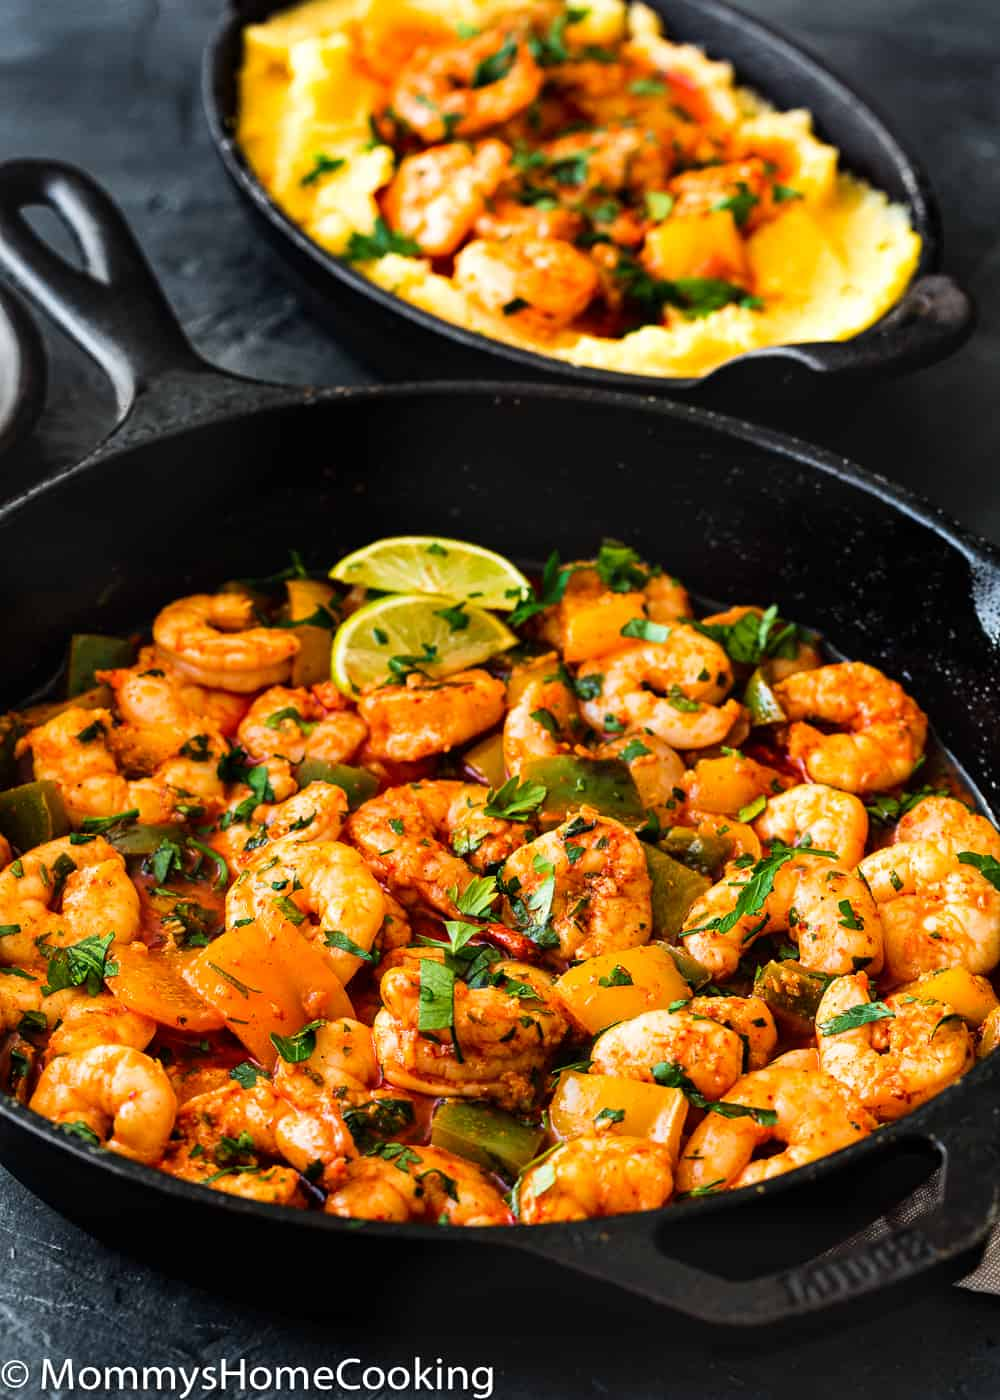 Easy Peri Peri Shrimp in a cast iron skillet garnished with parsley and lemon wedges